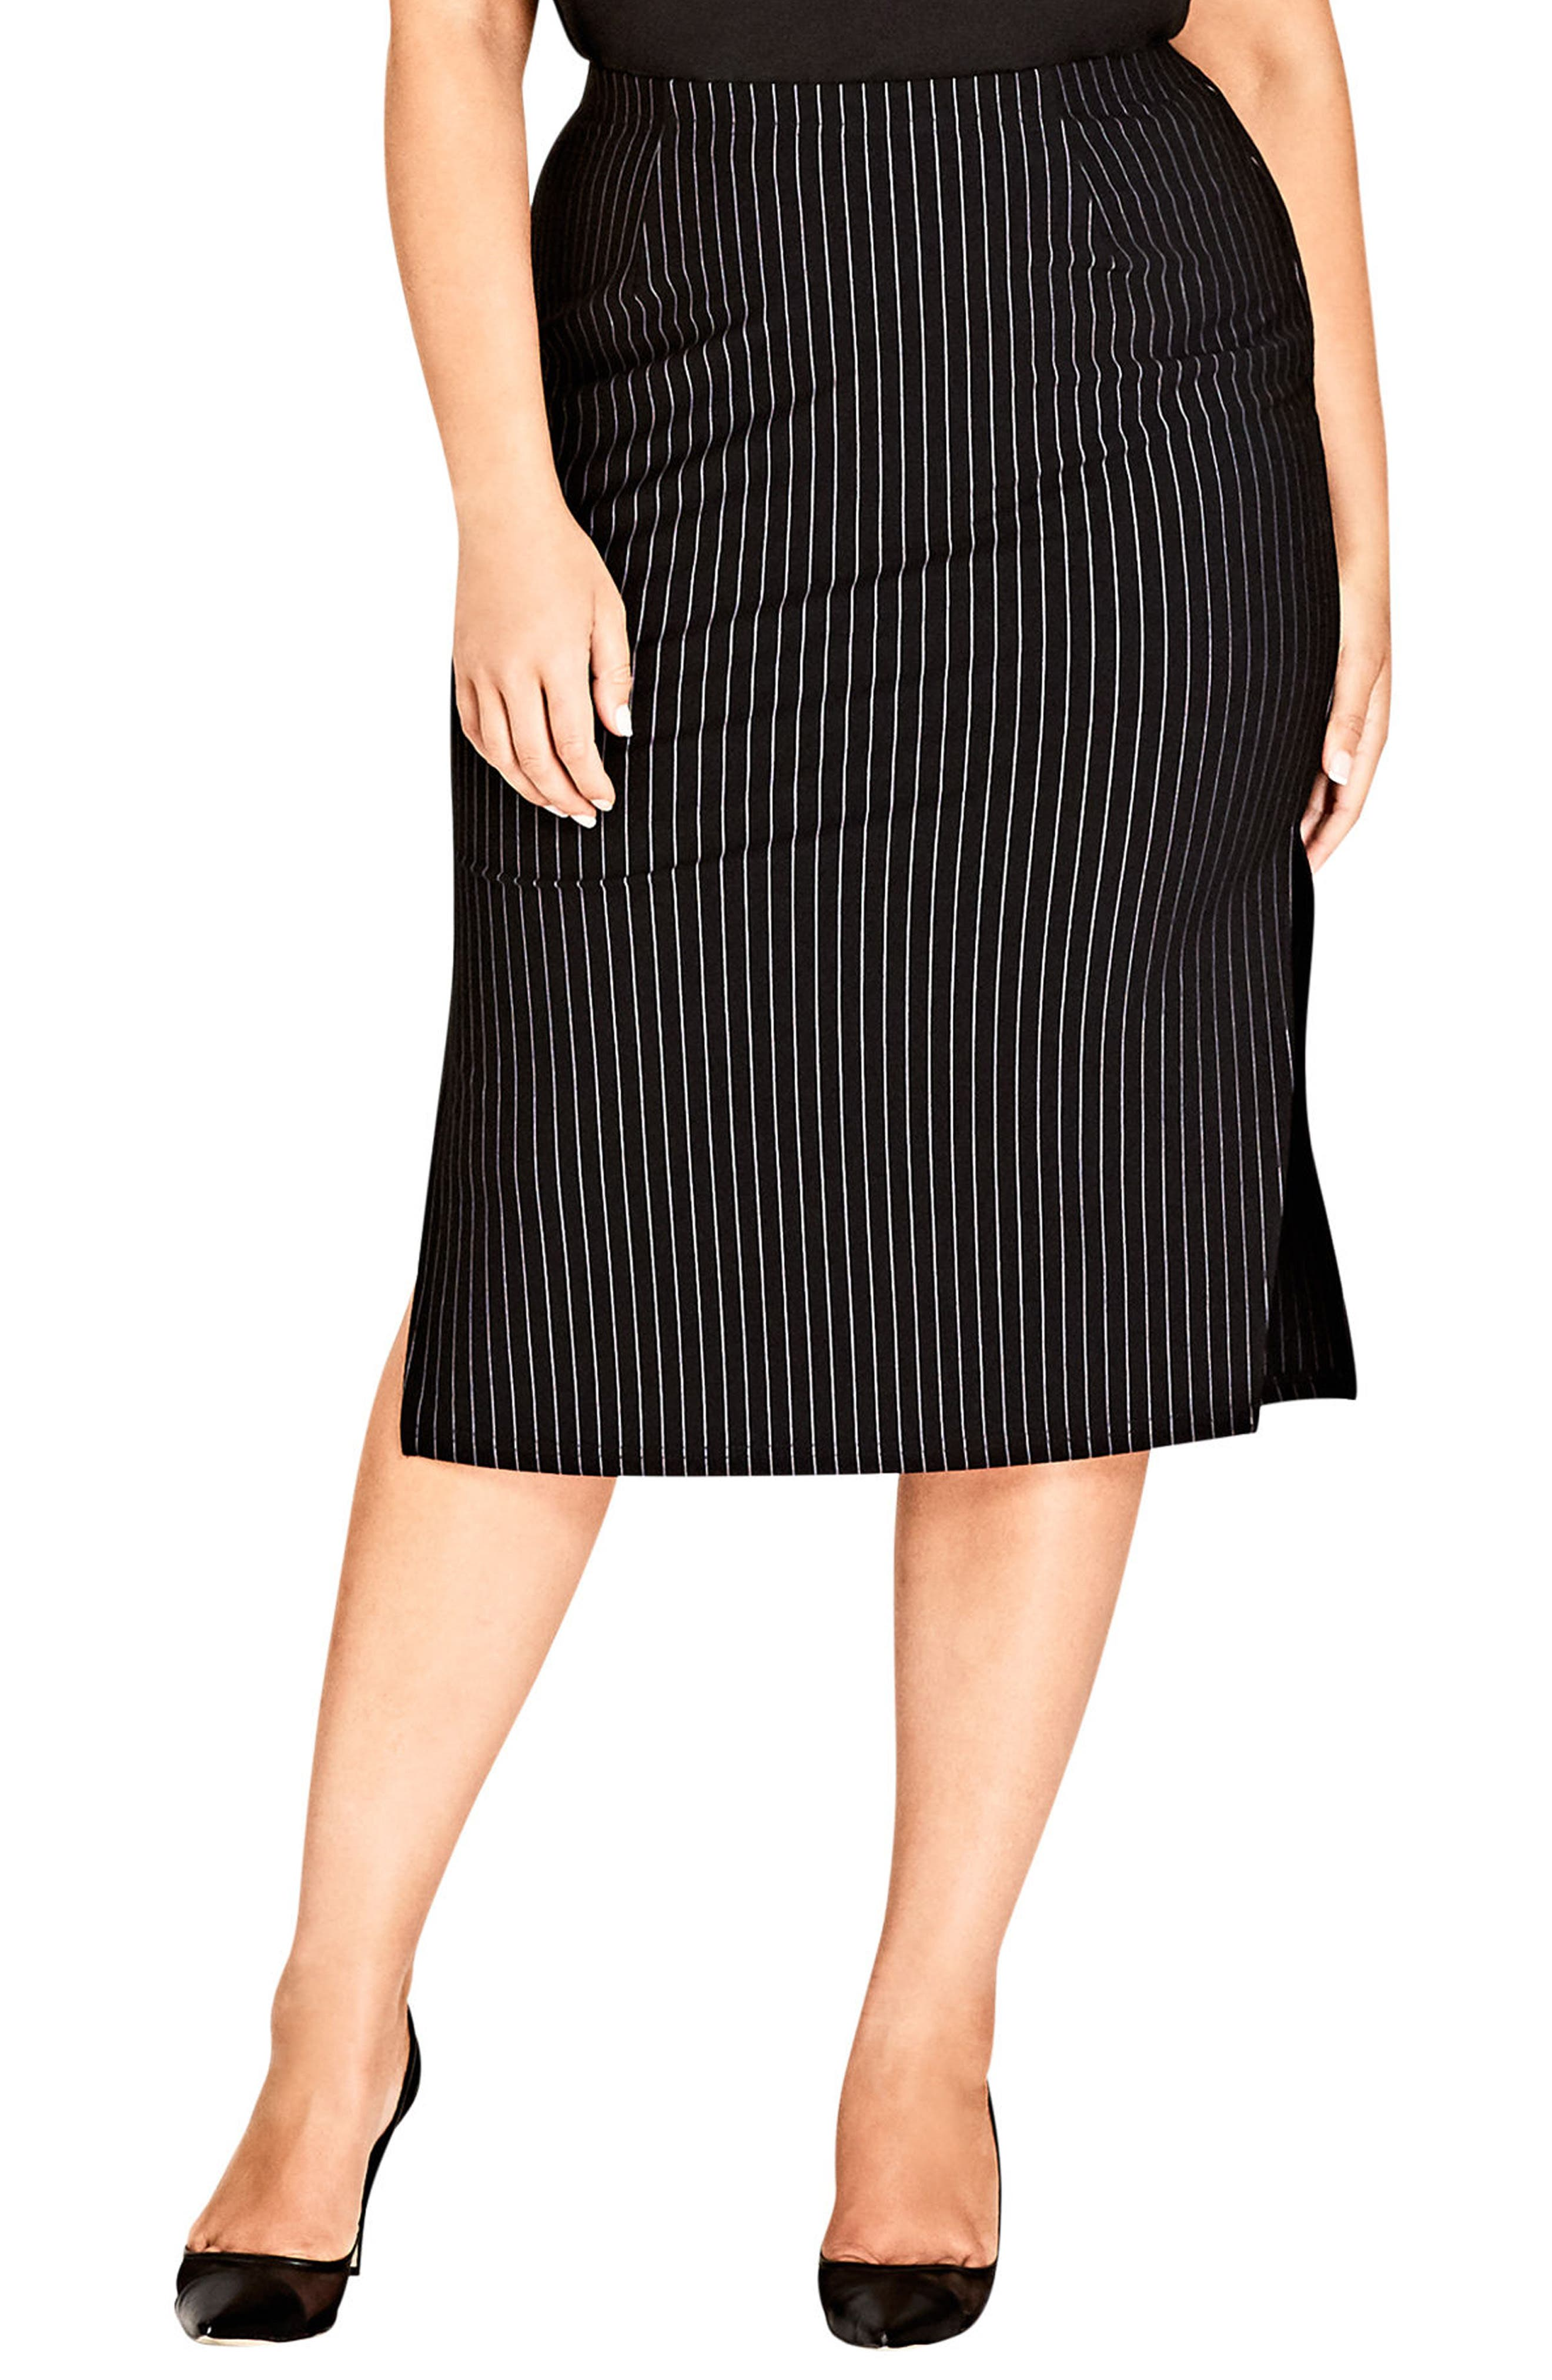 Chic City On Point Pencil skirt,                         Main,                         color, Pin Stripe